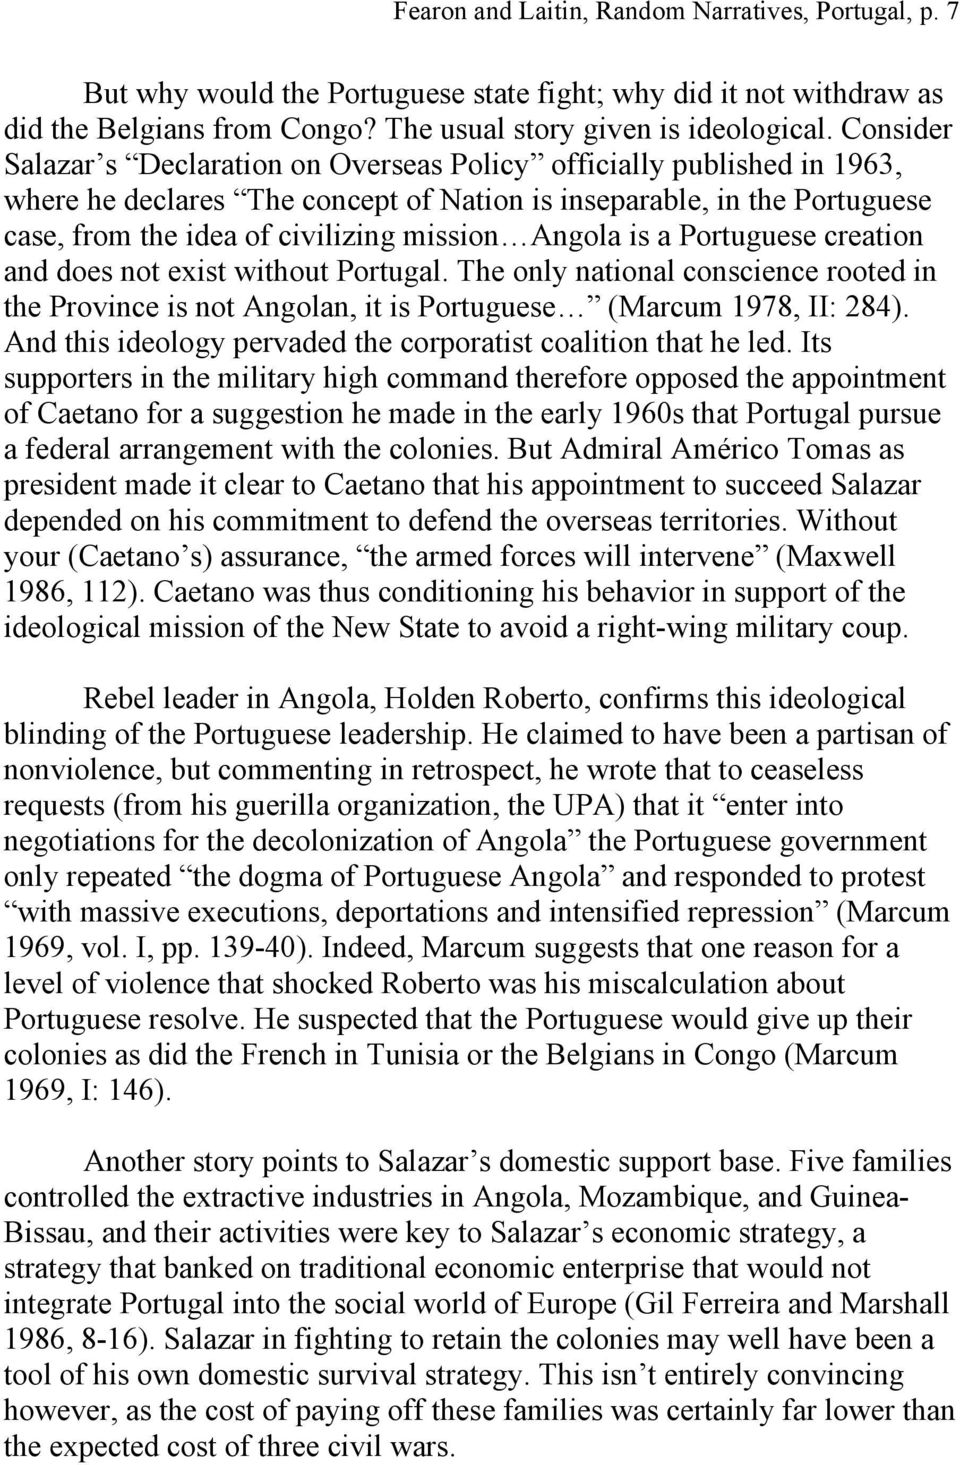 Angola is a Portuguese creation and does not exist without Portugal. The only national conscience rooted in the Province is not Angolan, it is Portuguese (Marcum 1978, II: 284).